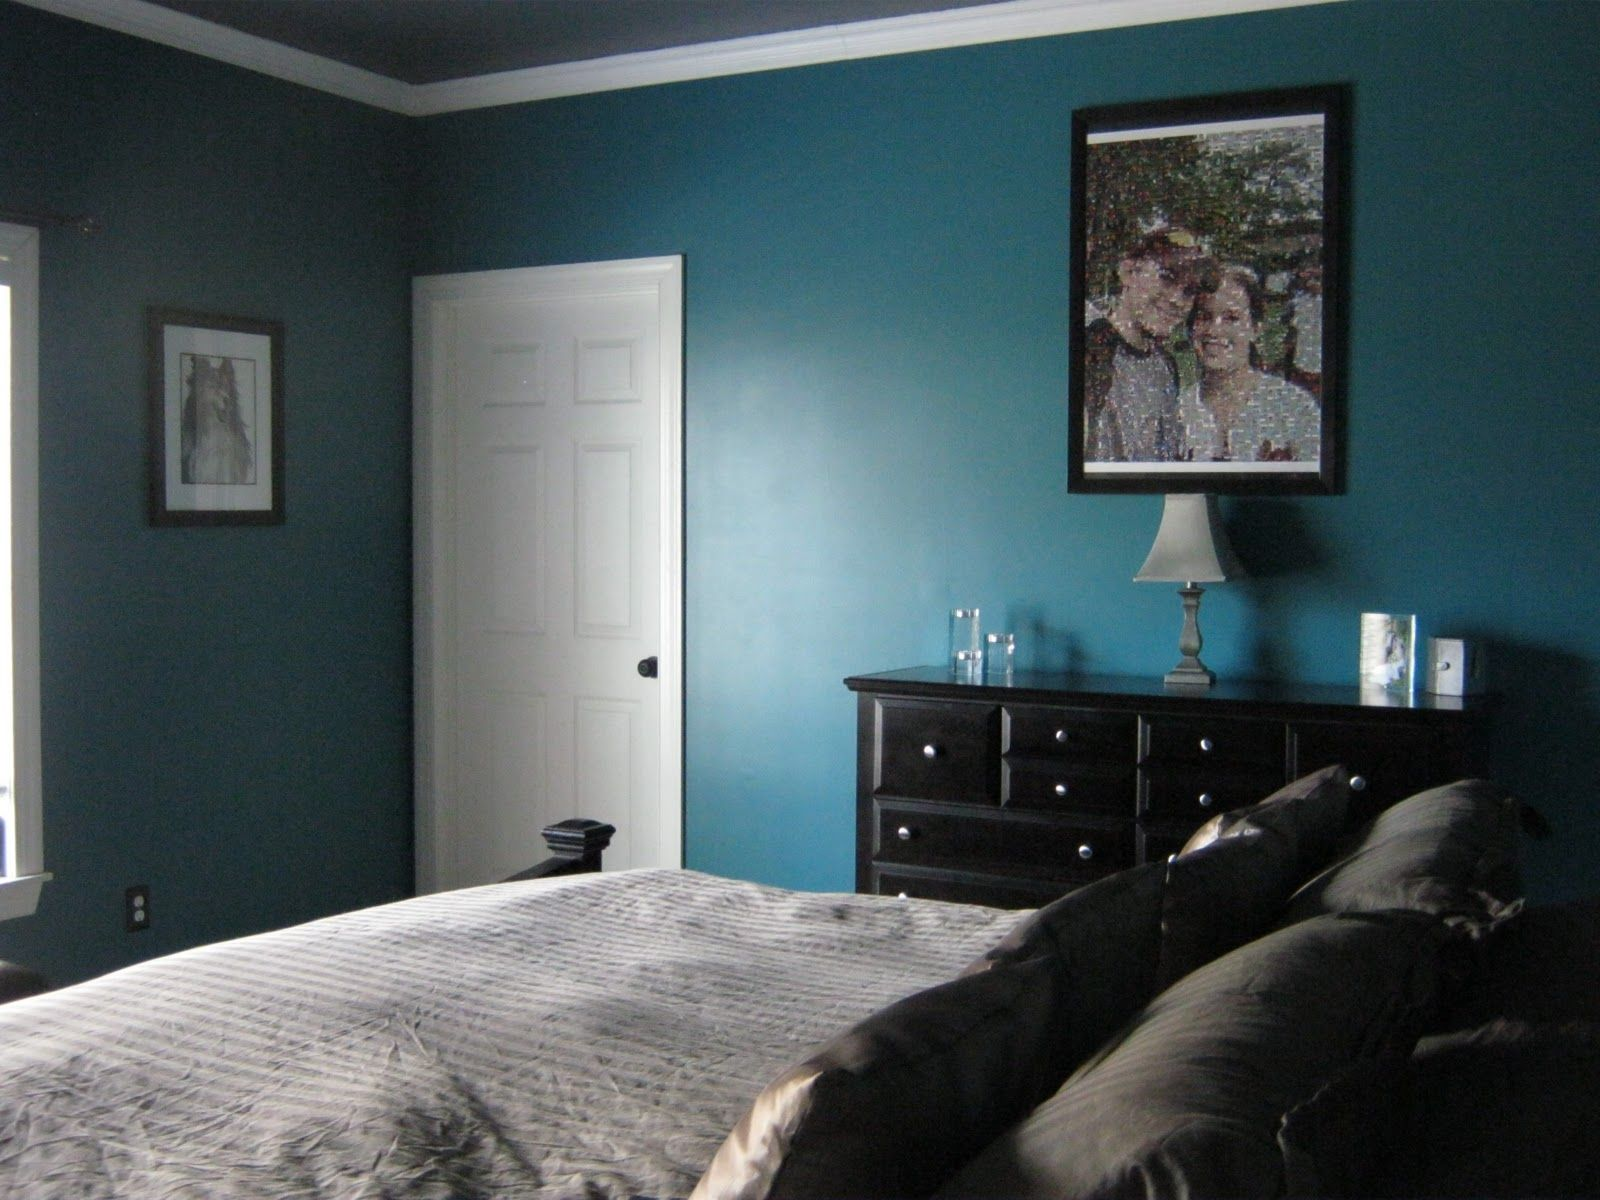 Teal And White Bedroom Adorable Teal White And Black Bedroom  Google Search  Charlotte Crafts Design Inspiration